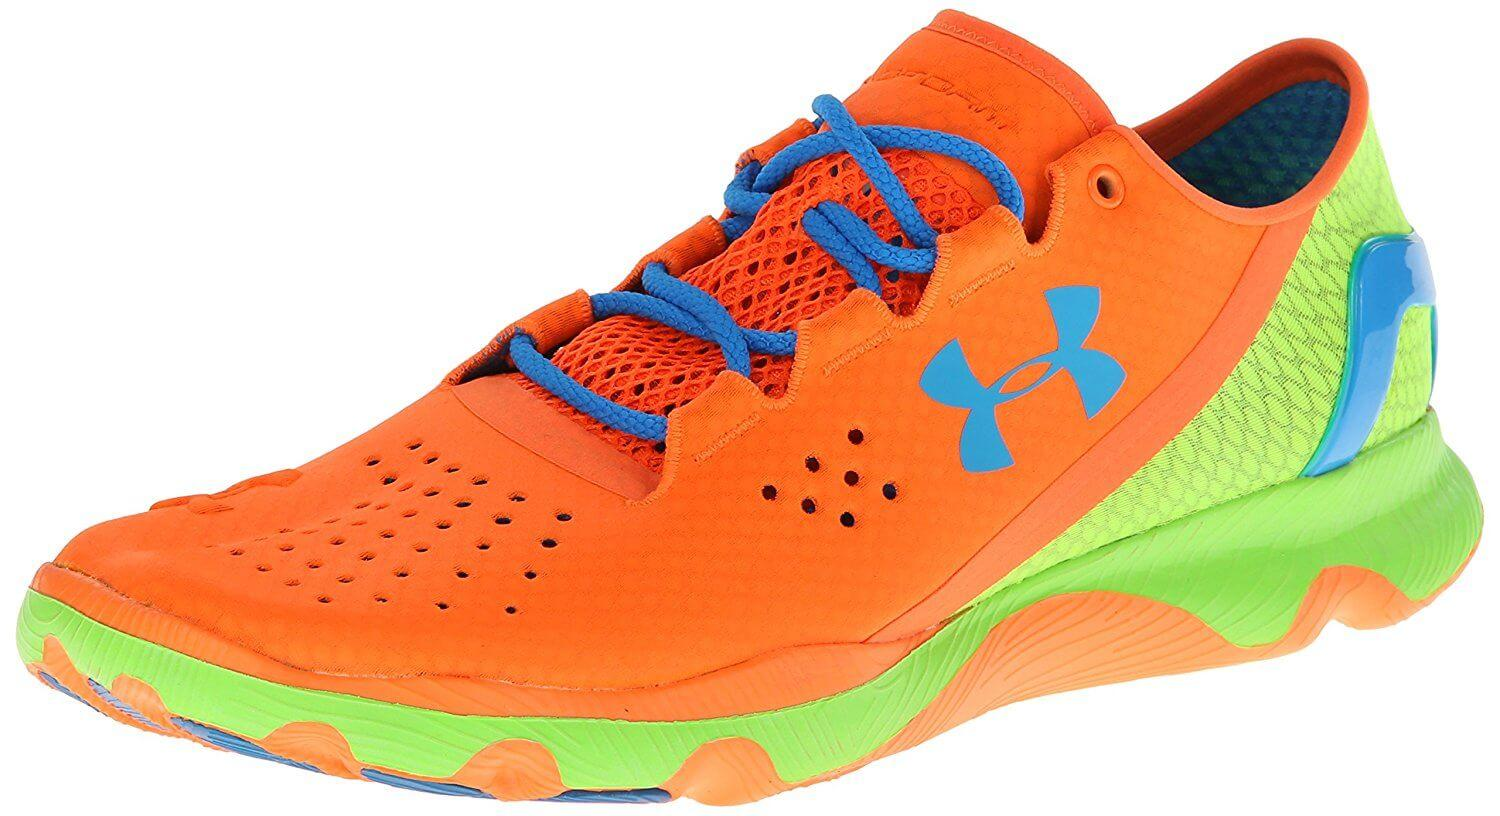 Best Under Armour Running Shoes For Long Distance